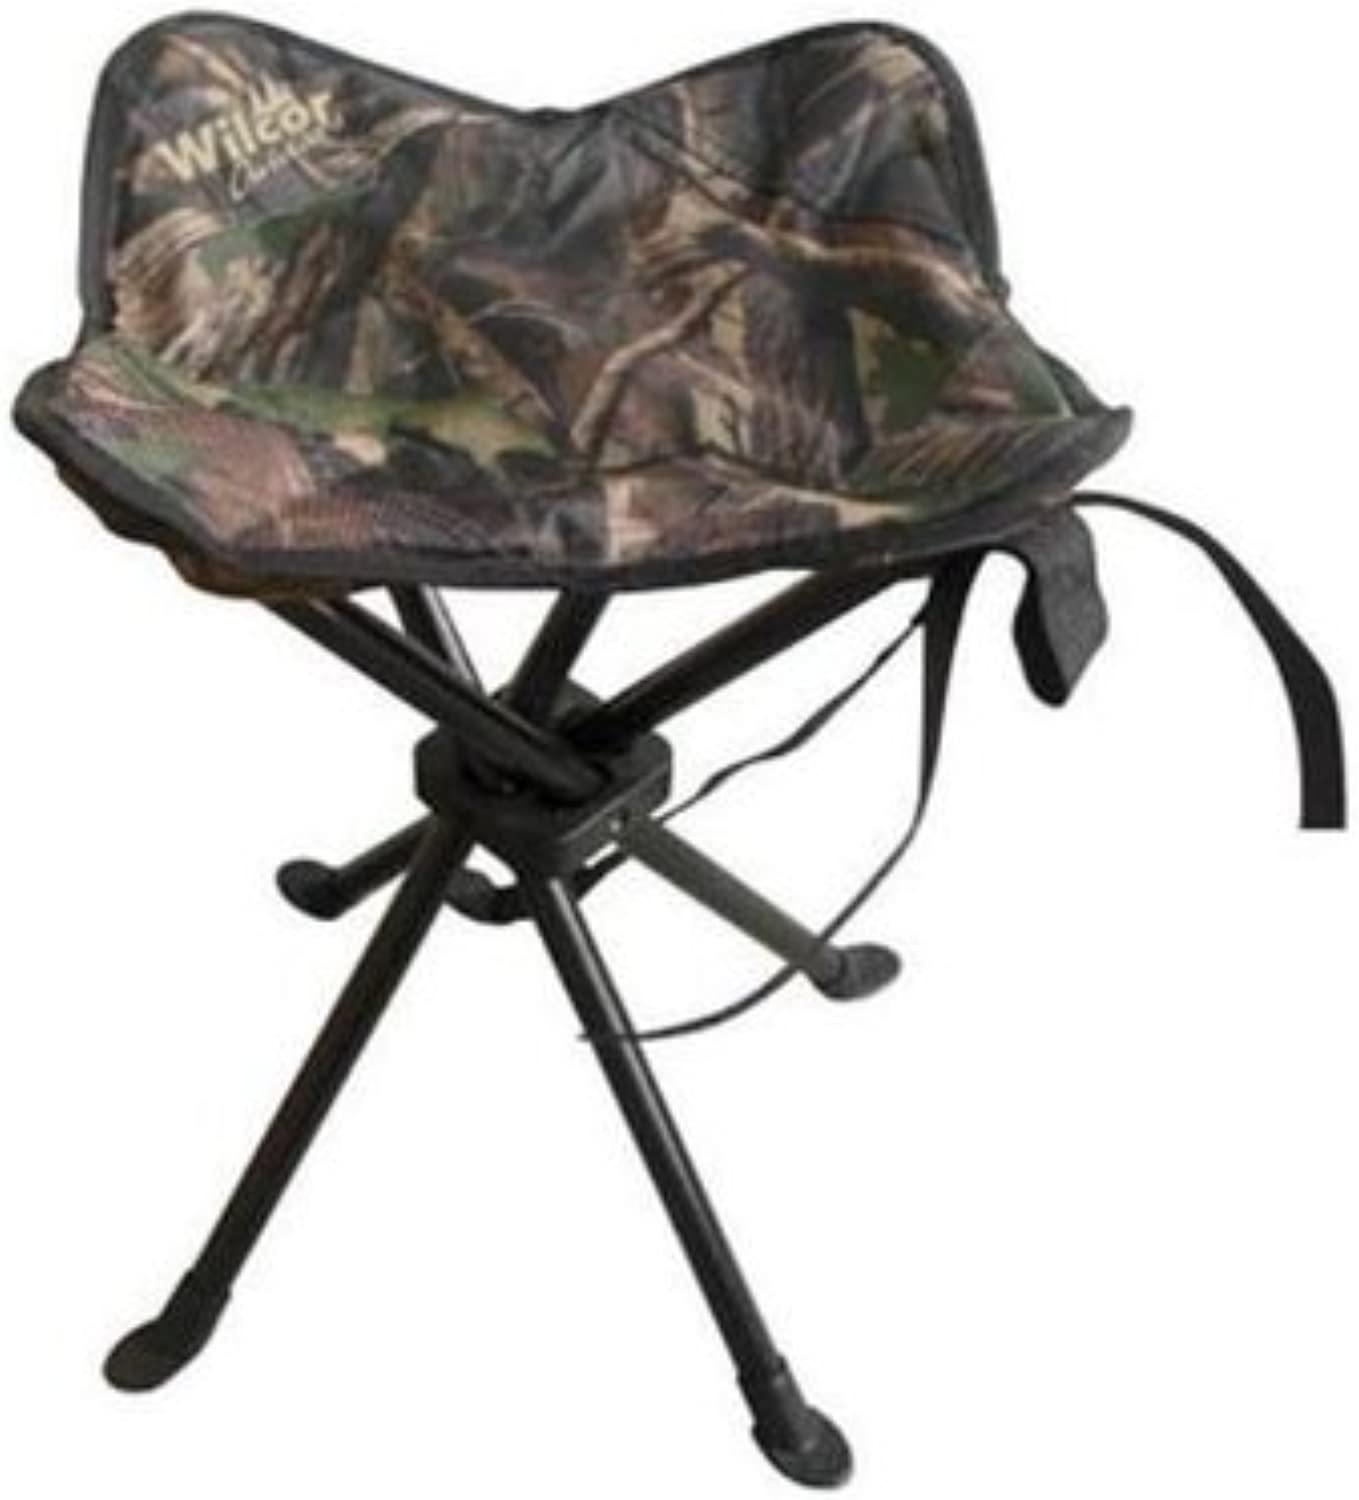 Camo Four Legged Folding Stool with Sand Feet and Bag Set of 2